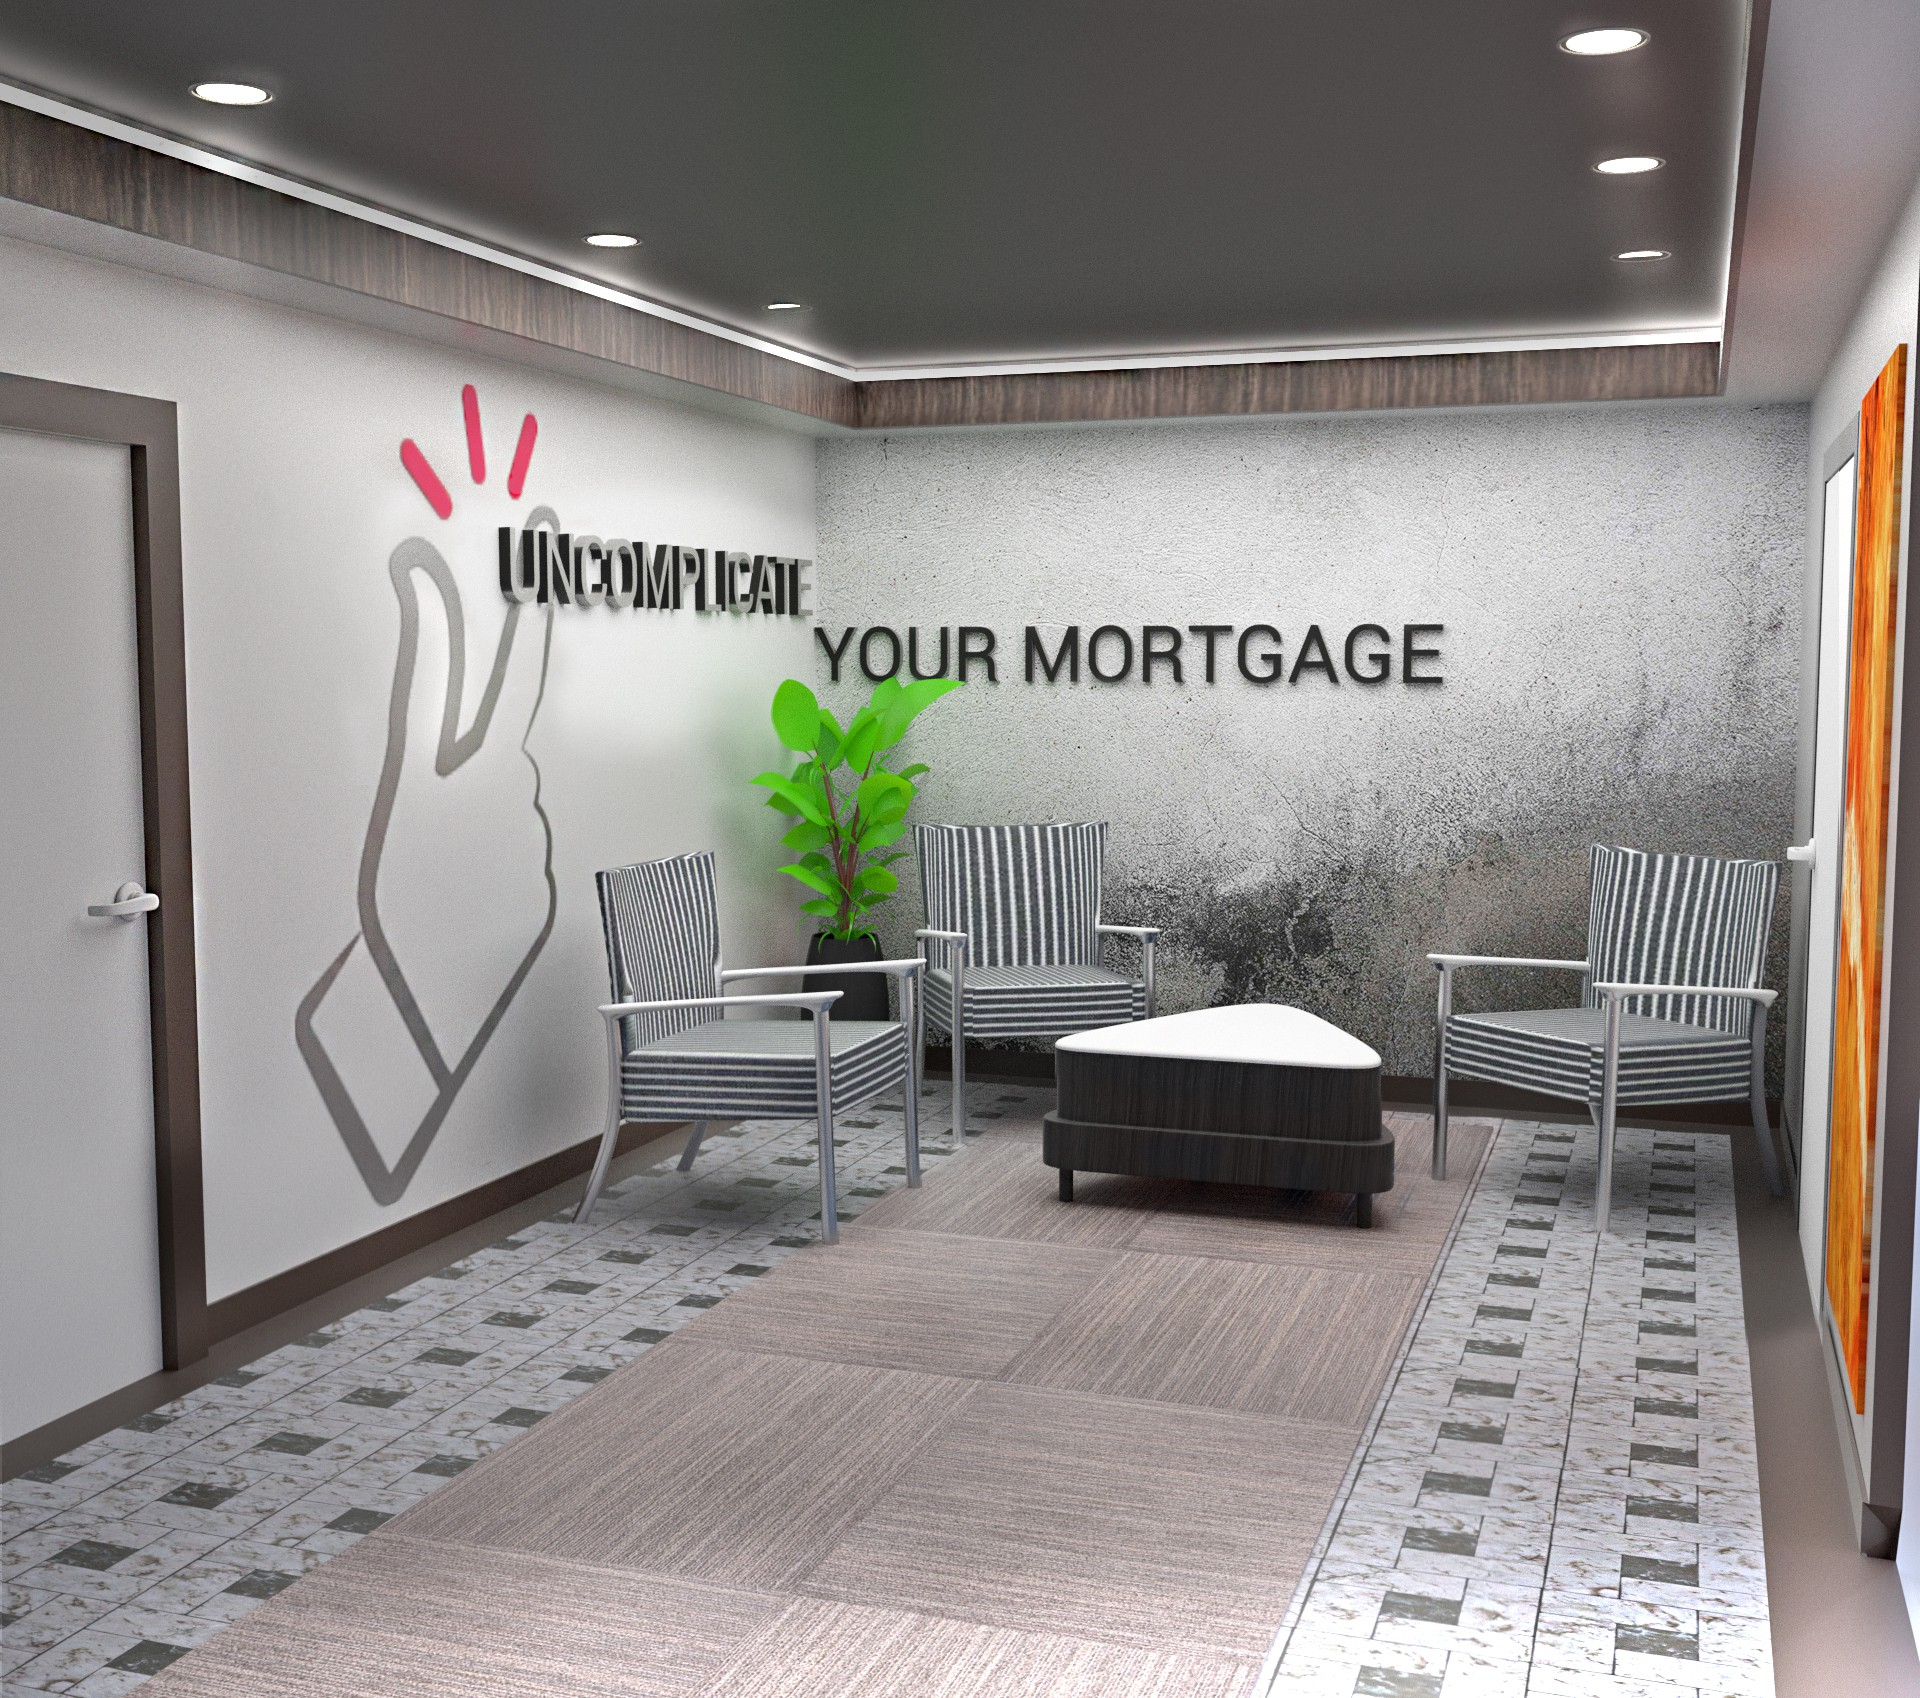 Main office entrance and Lobby branding